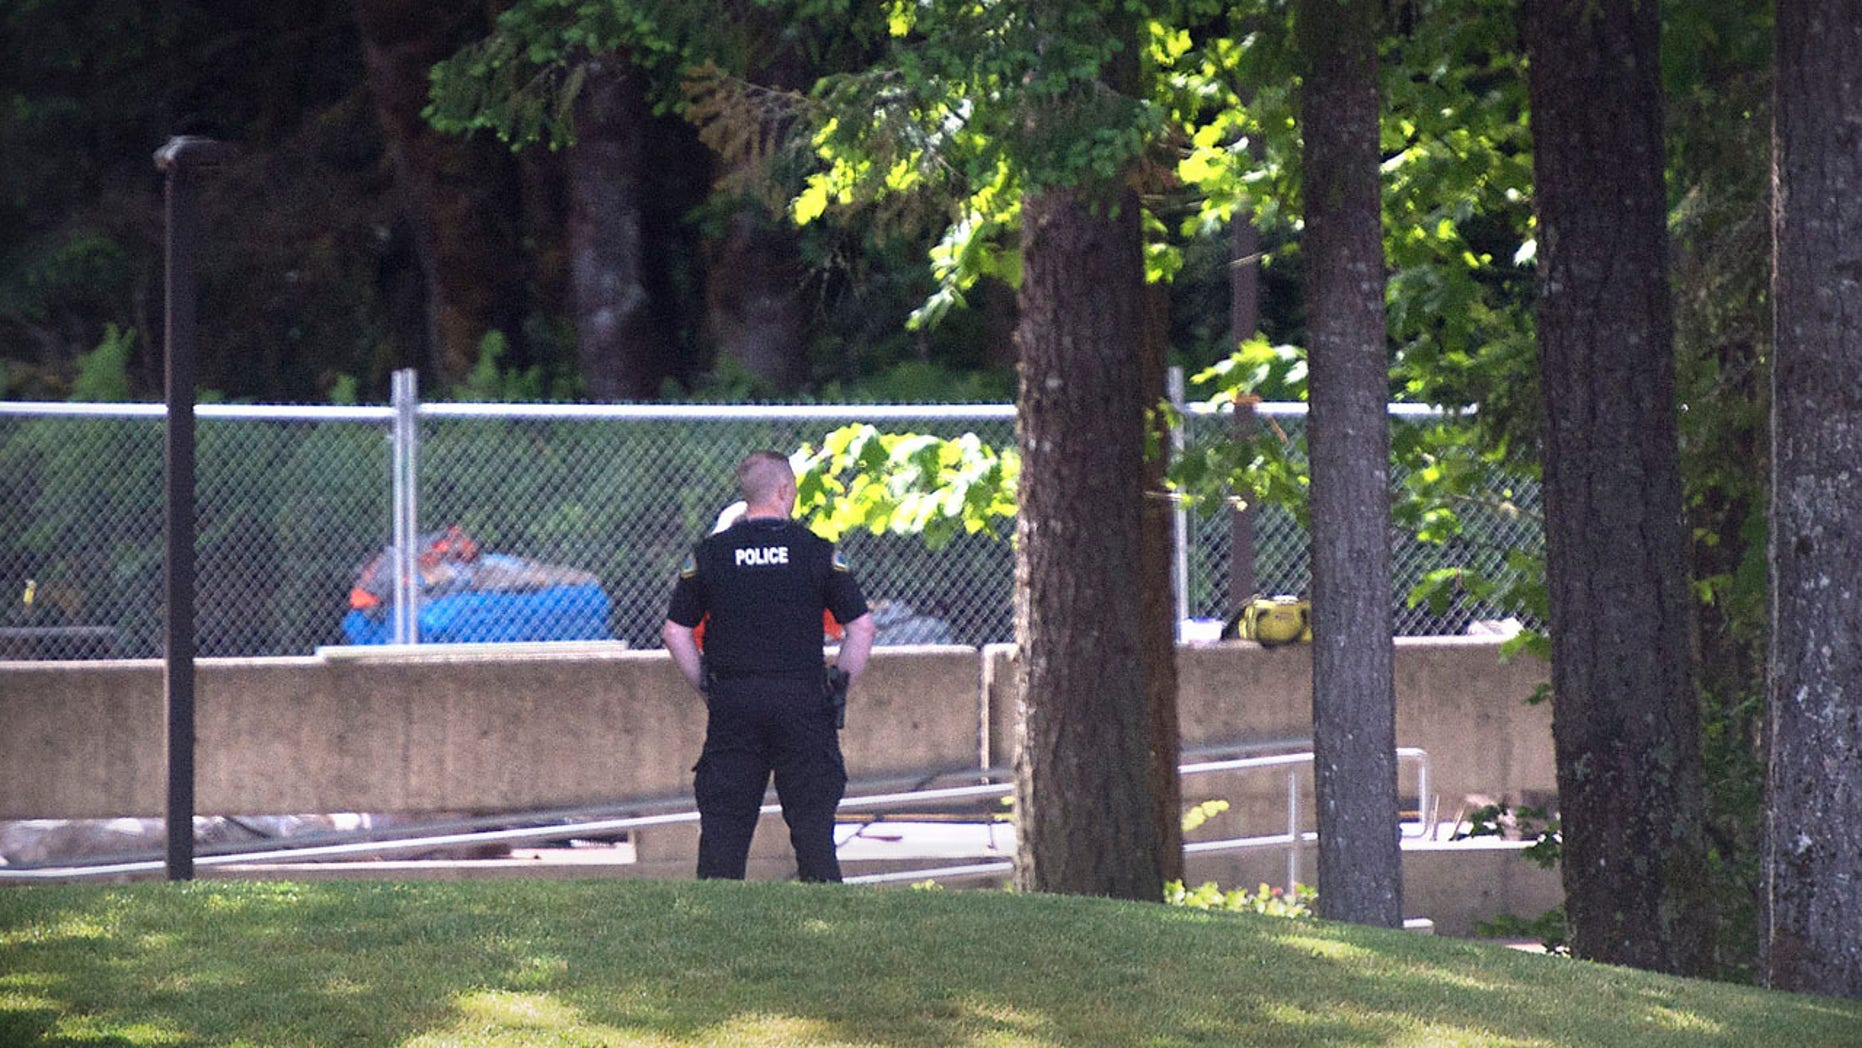 """An Evergreen State College police officers keeps watch over campus as student evacuate following a """"direct threat"""" on Thursday, June 1, 2017.  The announcement posted on the school's website Thursday asked everyone to leave the Olympia campus or return to residence halls for further instructions. The post did not provide other details. (Tony Overman /The Olympian via AP)"""